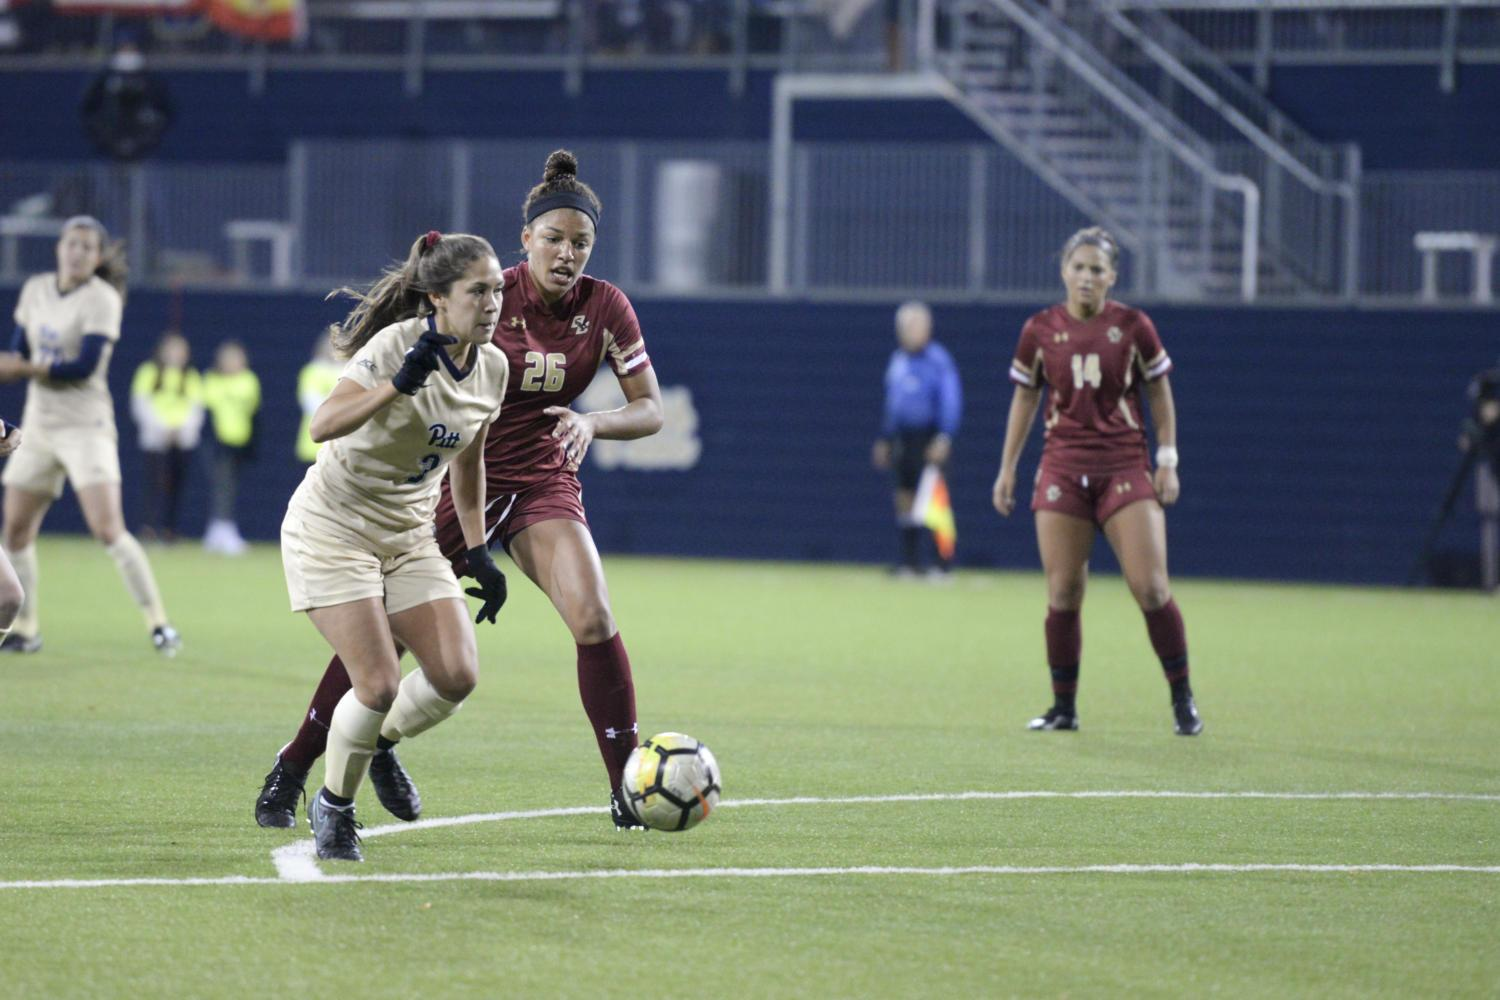 Junior forward Sarah Krause scored in the 32nd minute at Pitt's double overtime loss, 3-2, against Boston College Thursday night. (Photo by Isabelle Glatts | Staff Photographer)